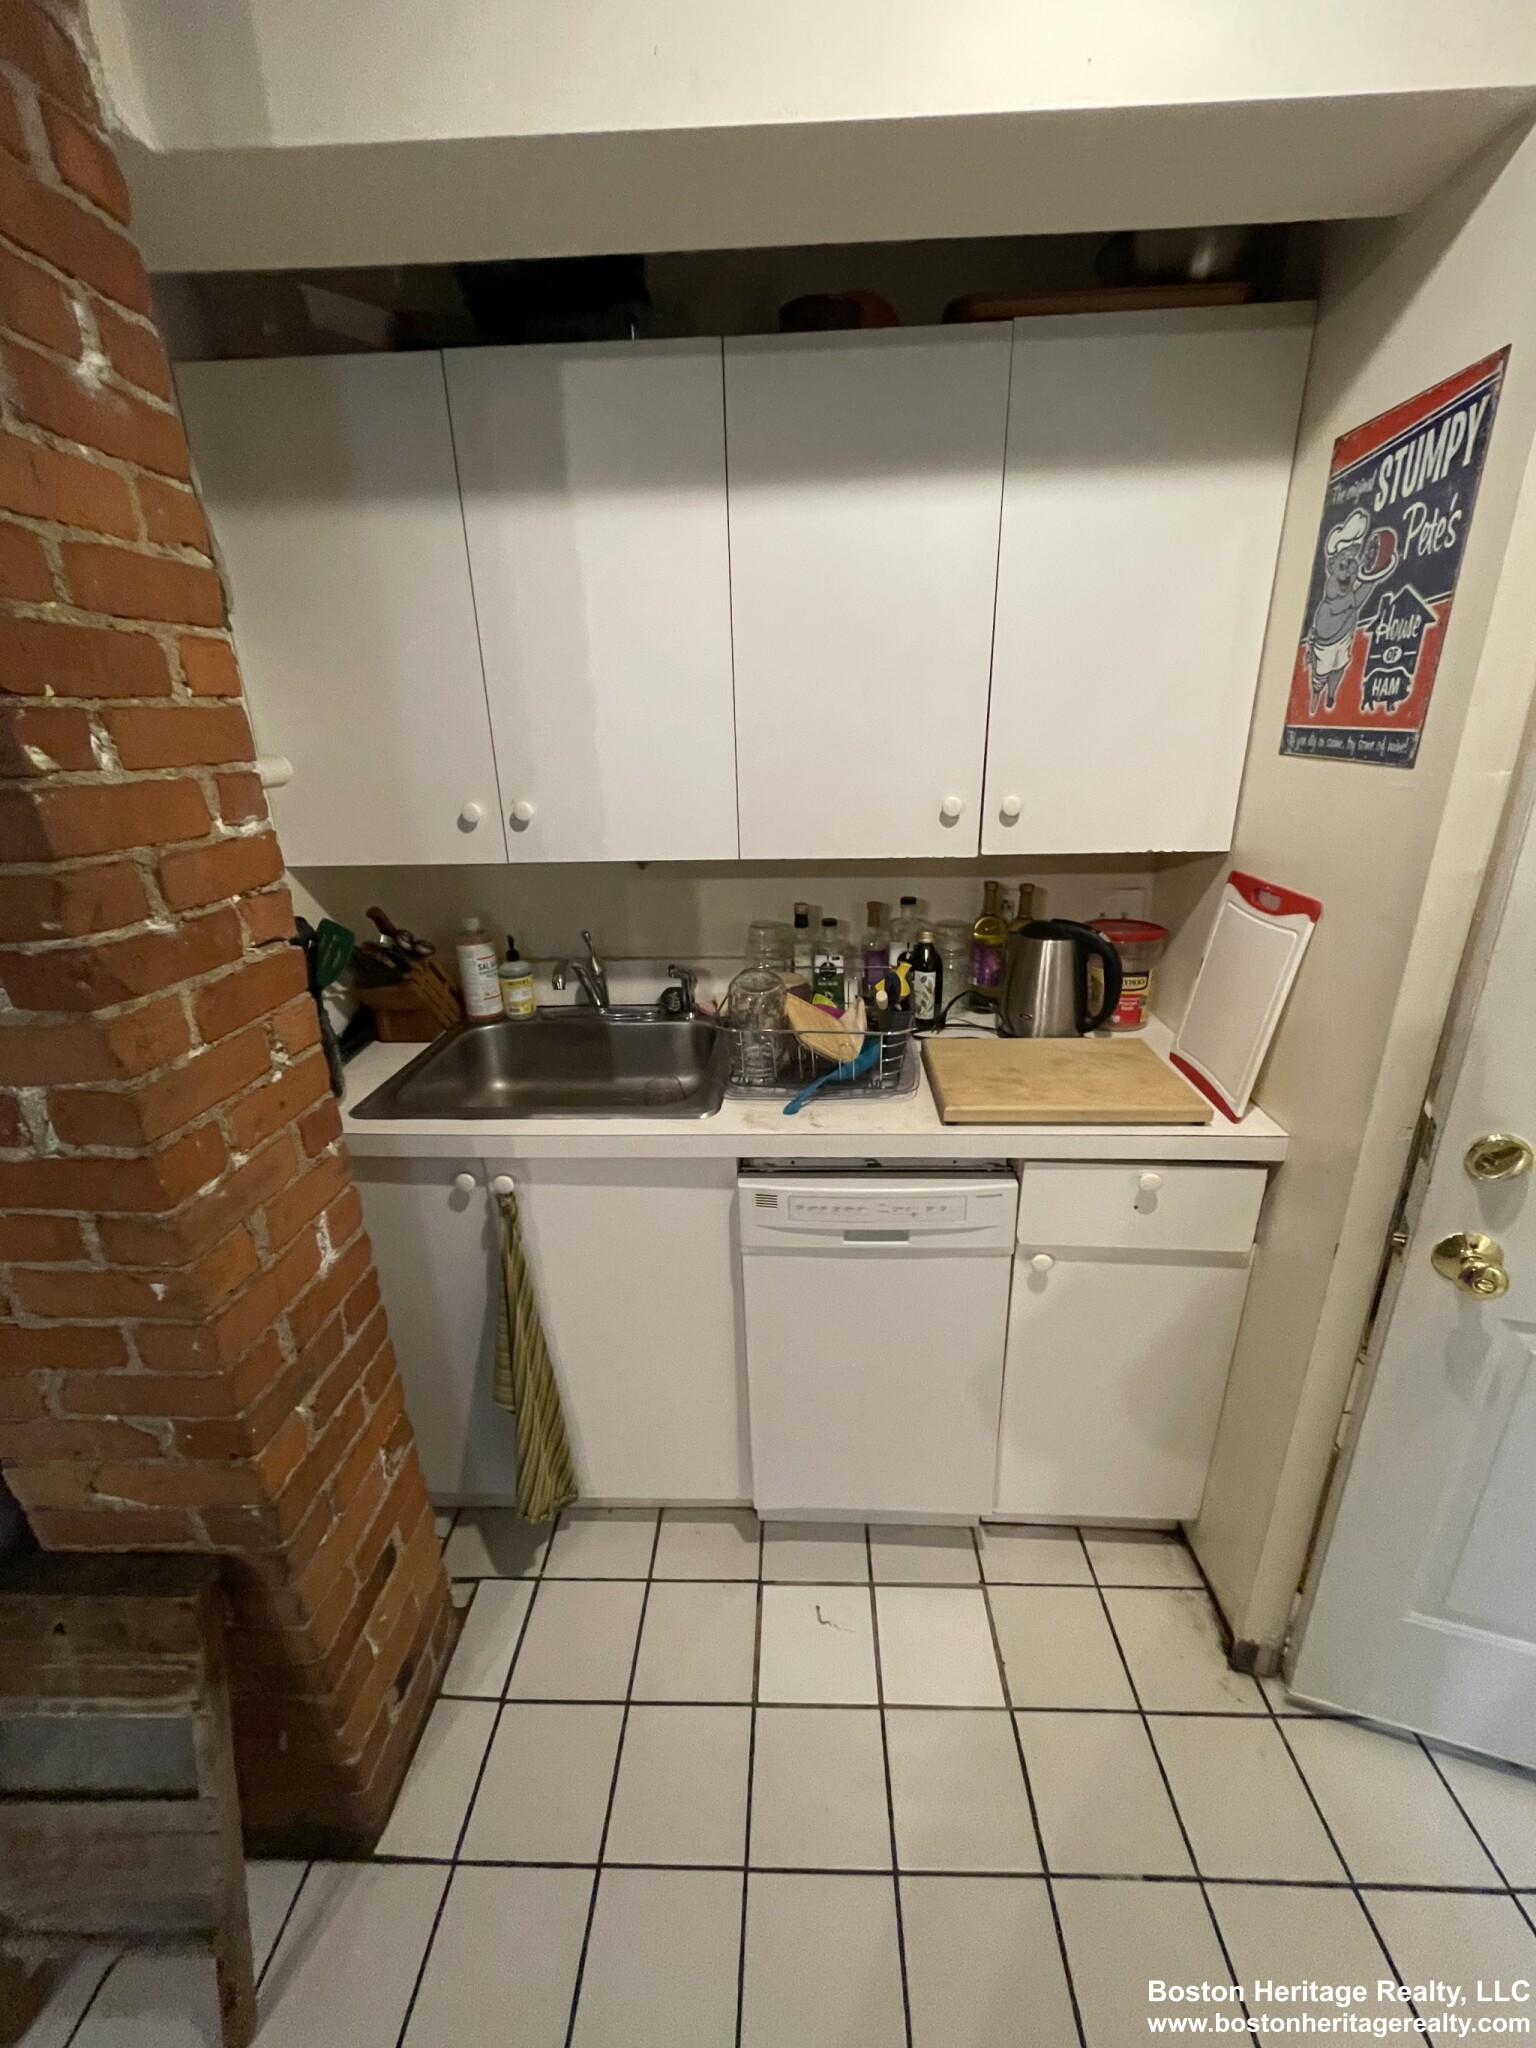 2 Beds, 1 Bath apartment in Boston, Fenway for $2,600